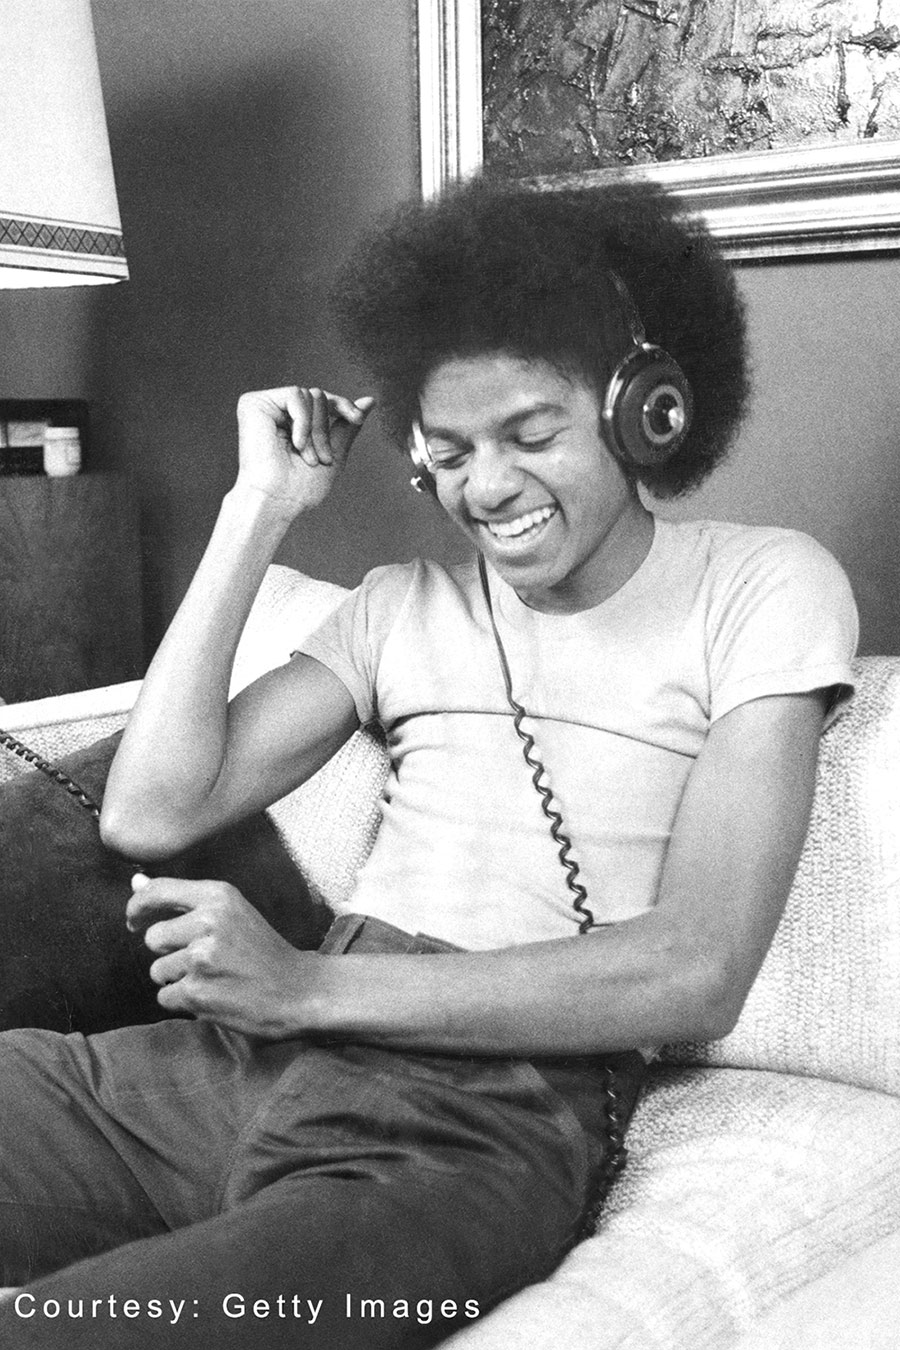 Michael Jackson listens to music on November 17, 1977